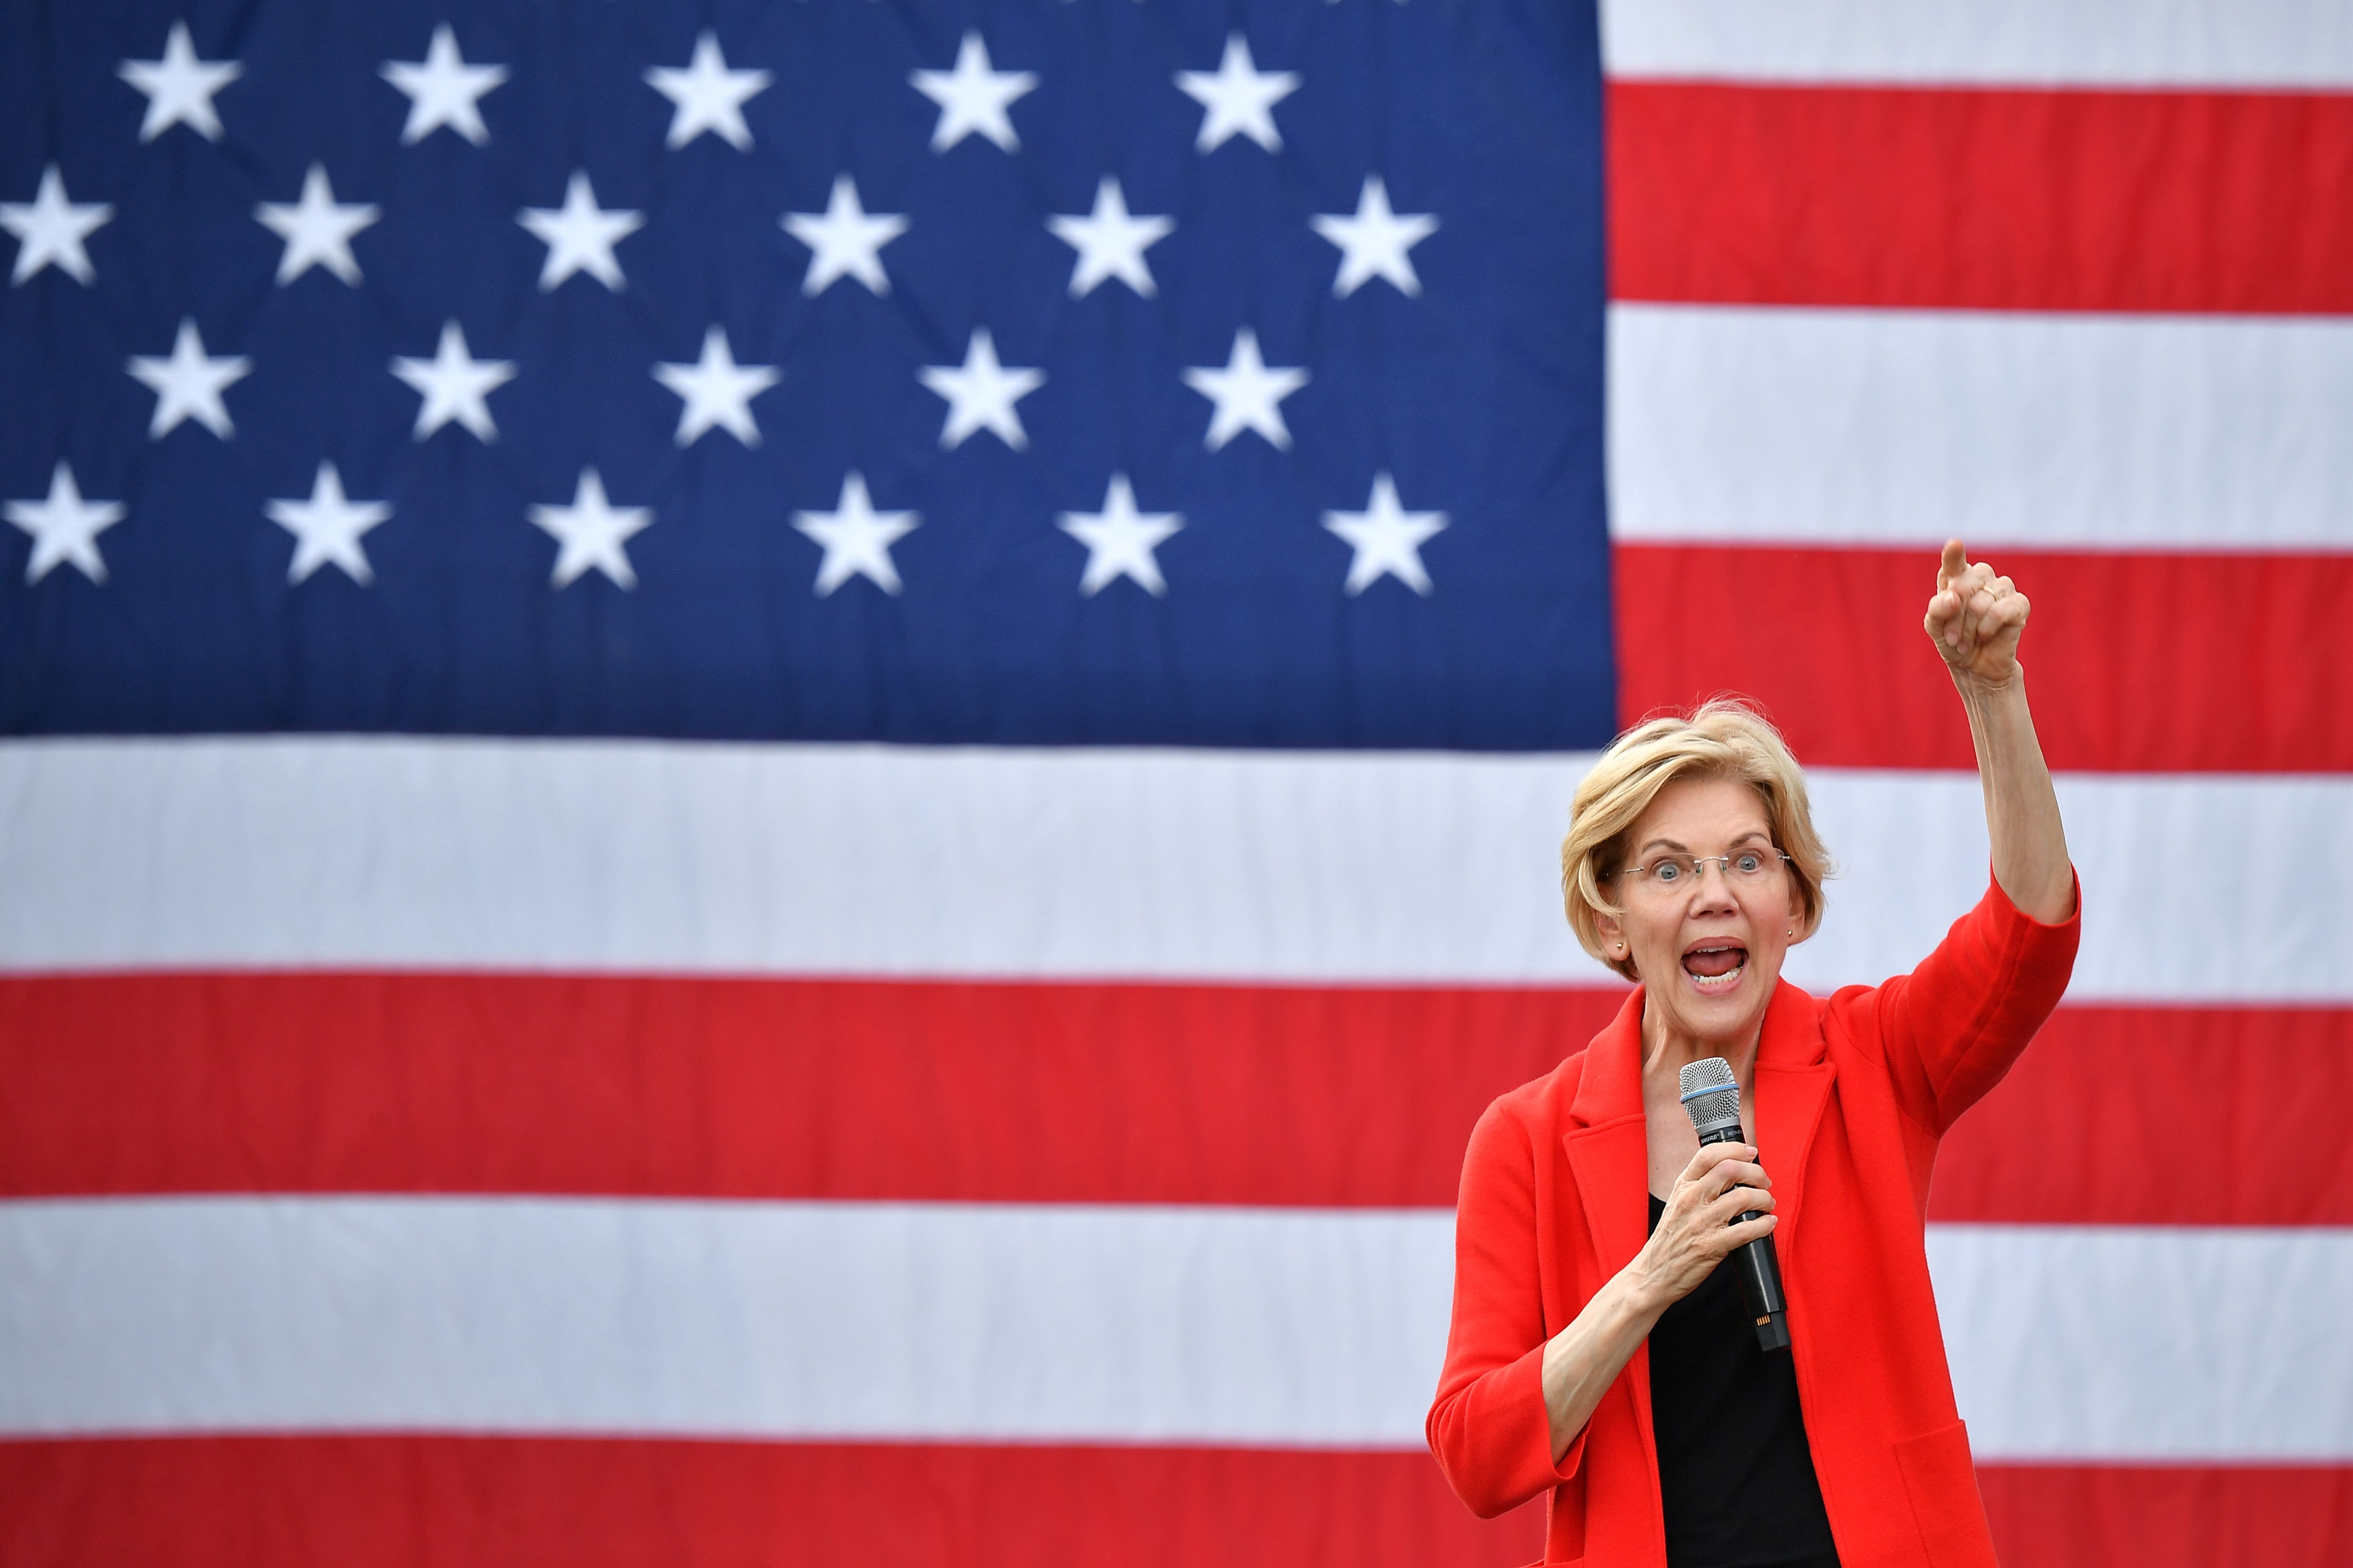 Democratic presidential candidate Elizabeth Warren gestures as she speaks during a campaign stop at George Mason University in Fairfax, Virginia on May 16, 2019. (Photo by MANDEL NGAN / AFP via Getty Images)